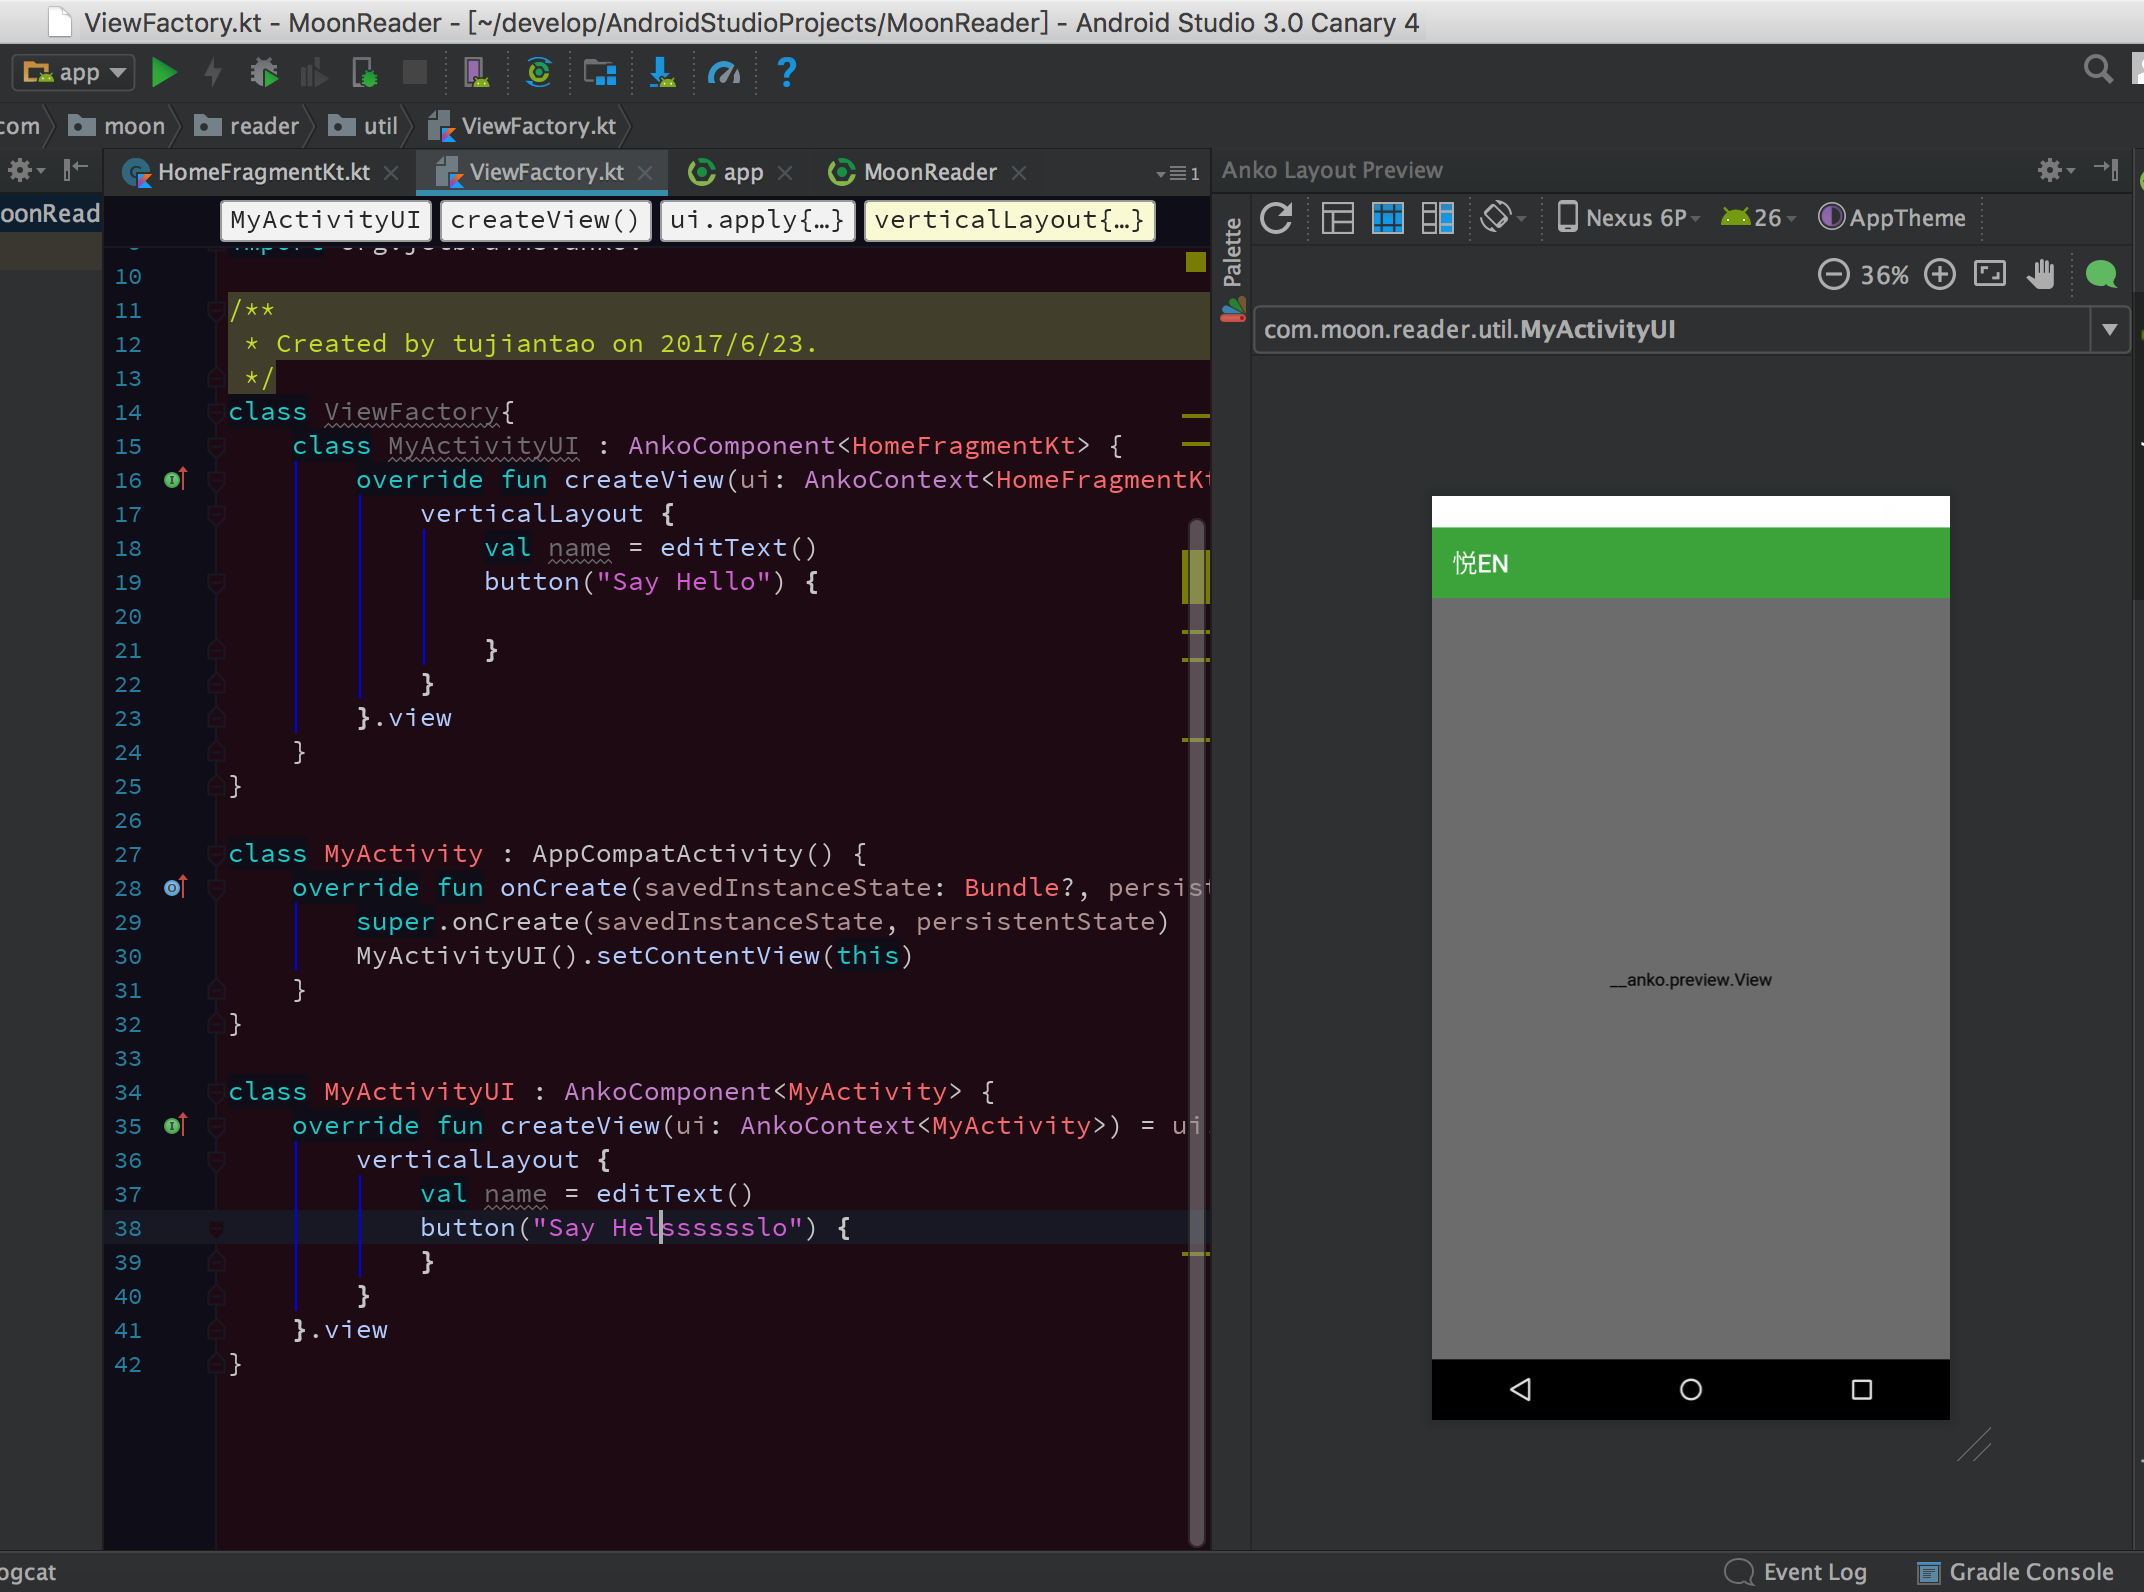 android studio preview greyed out